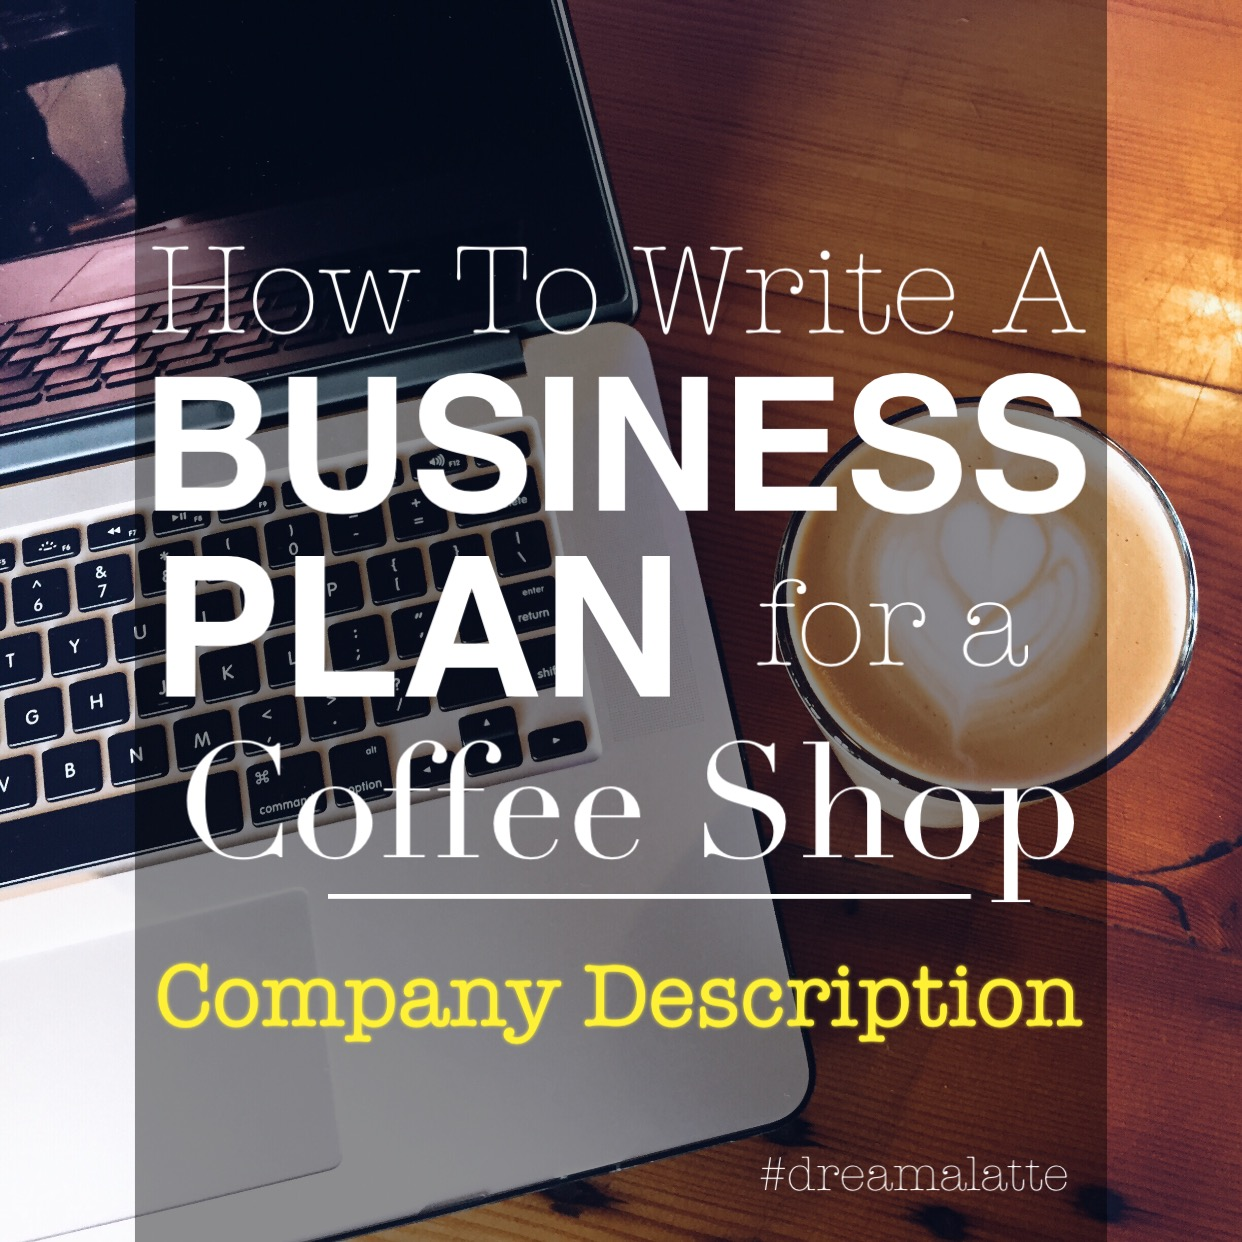 Business plan for shop